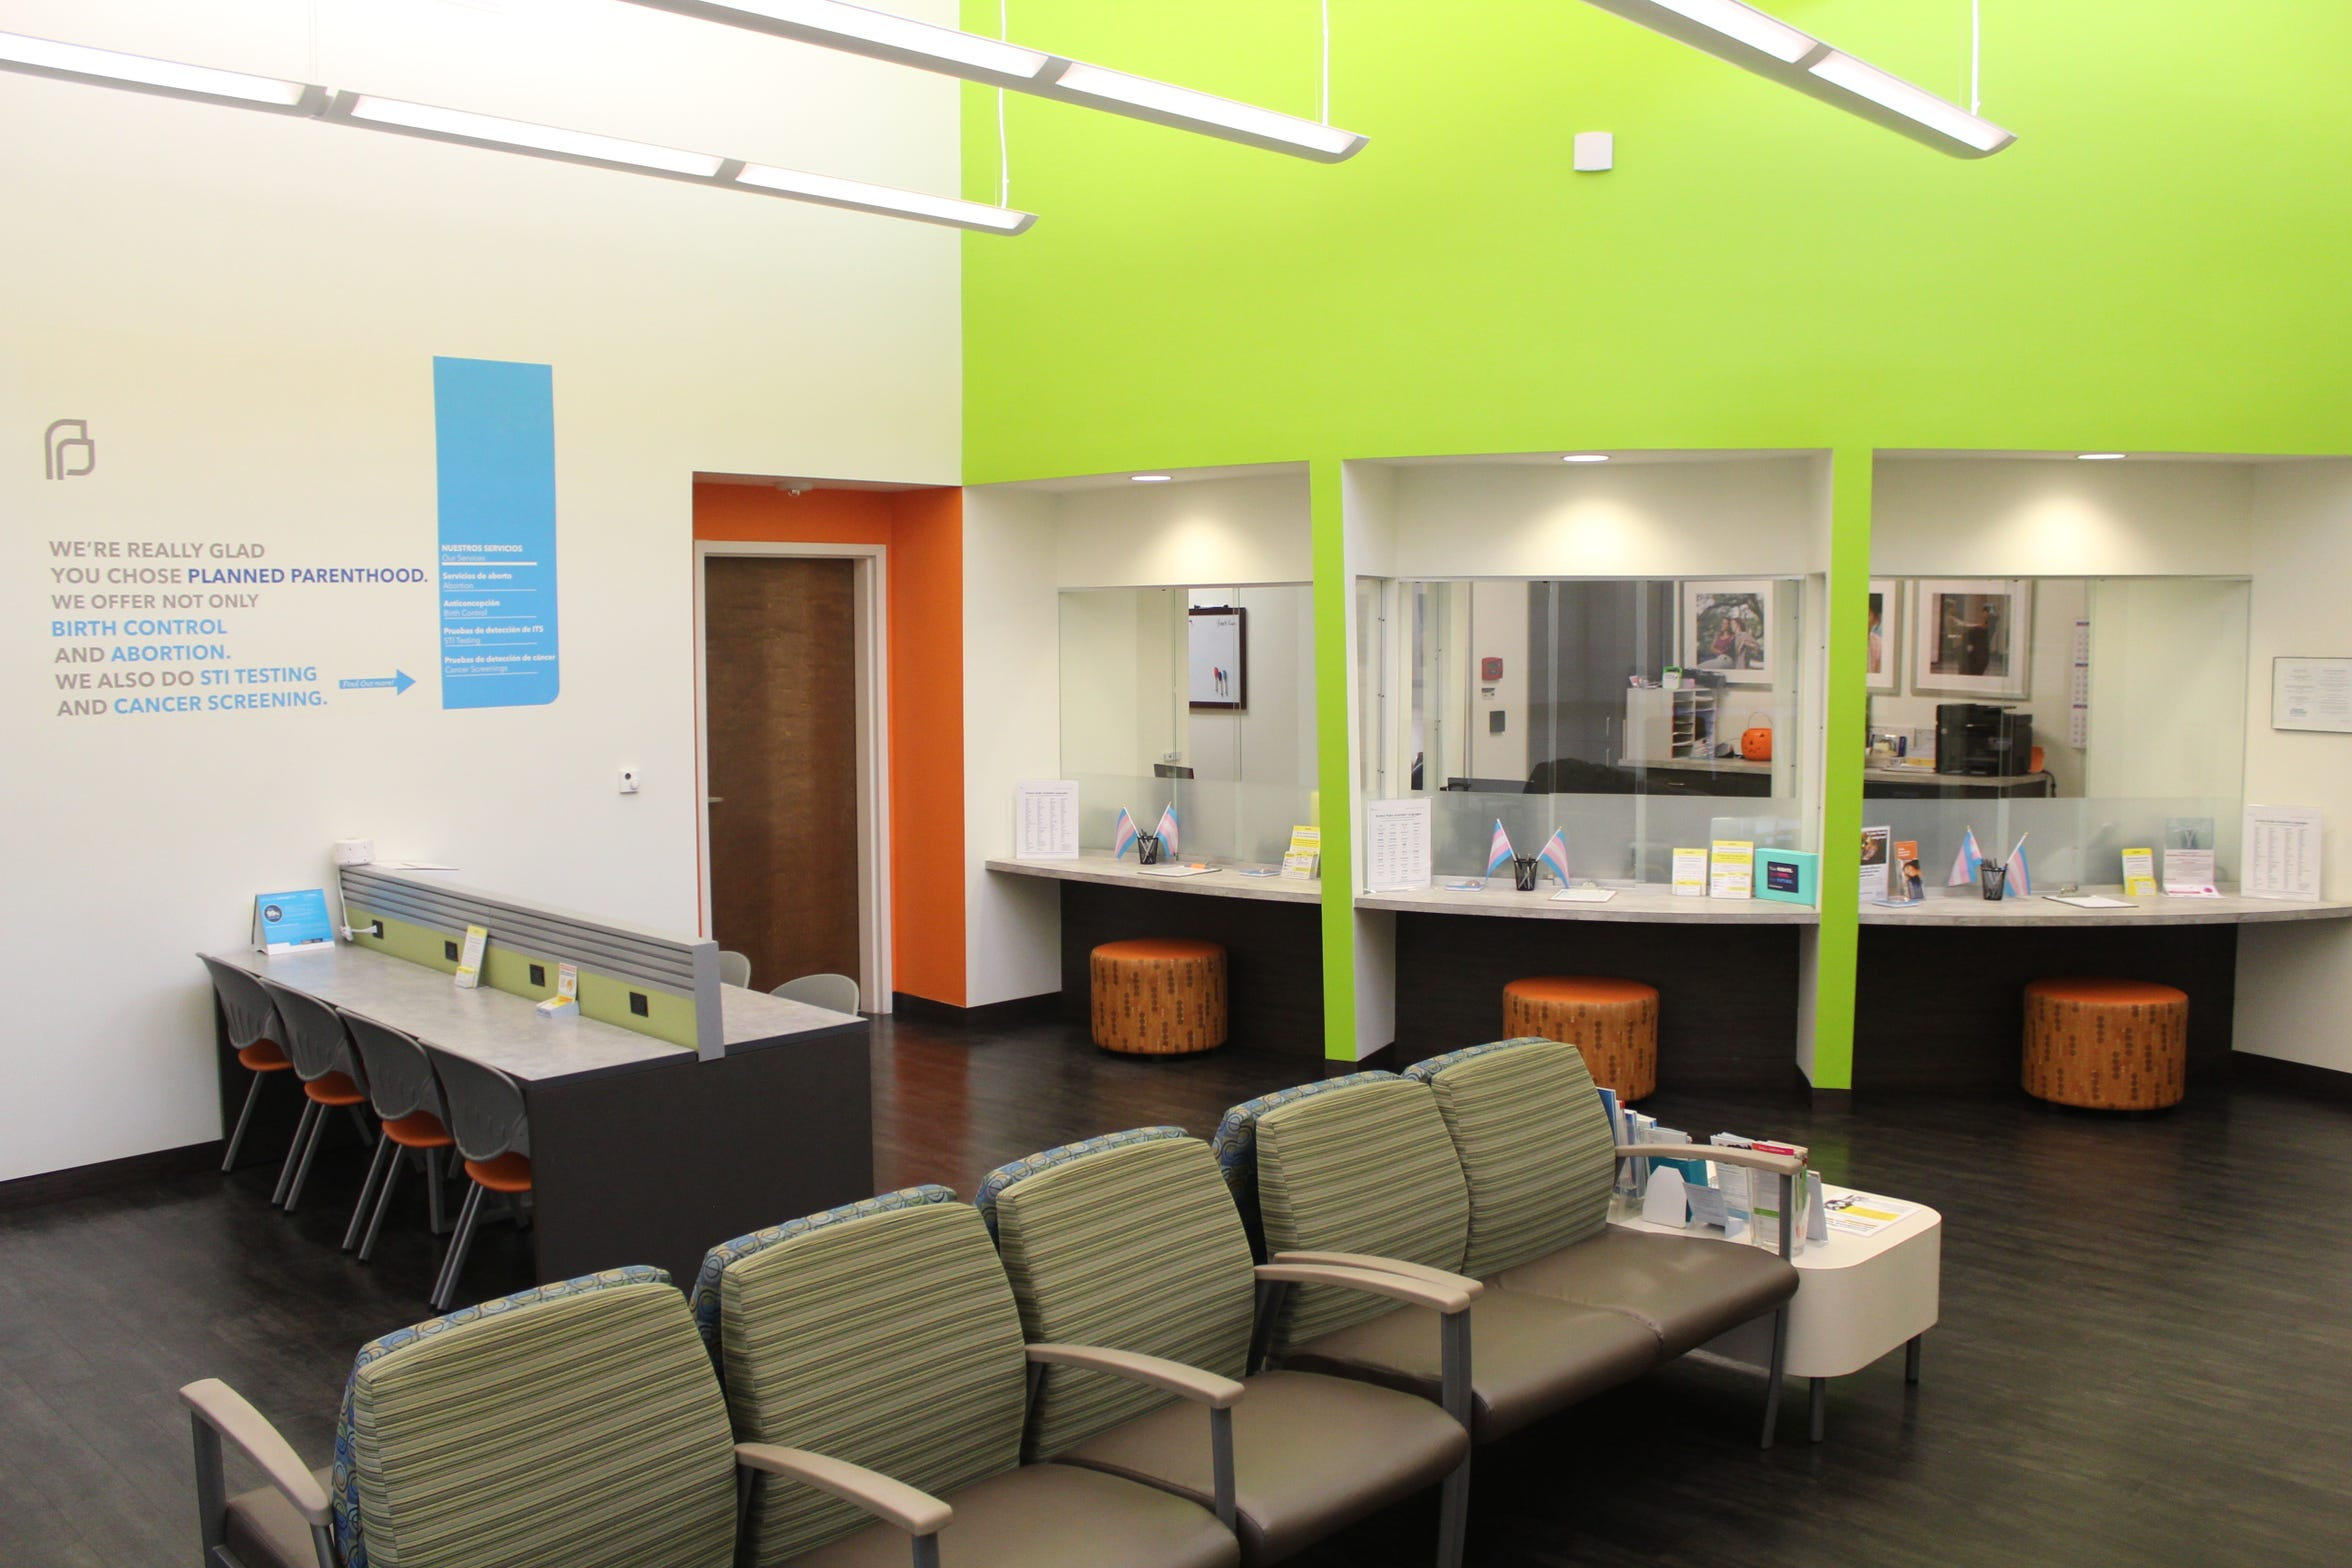 The reception area in the Planned Parenthood in New Orleans where a new gender clinic opened in October to serve LGBTQ patients.